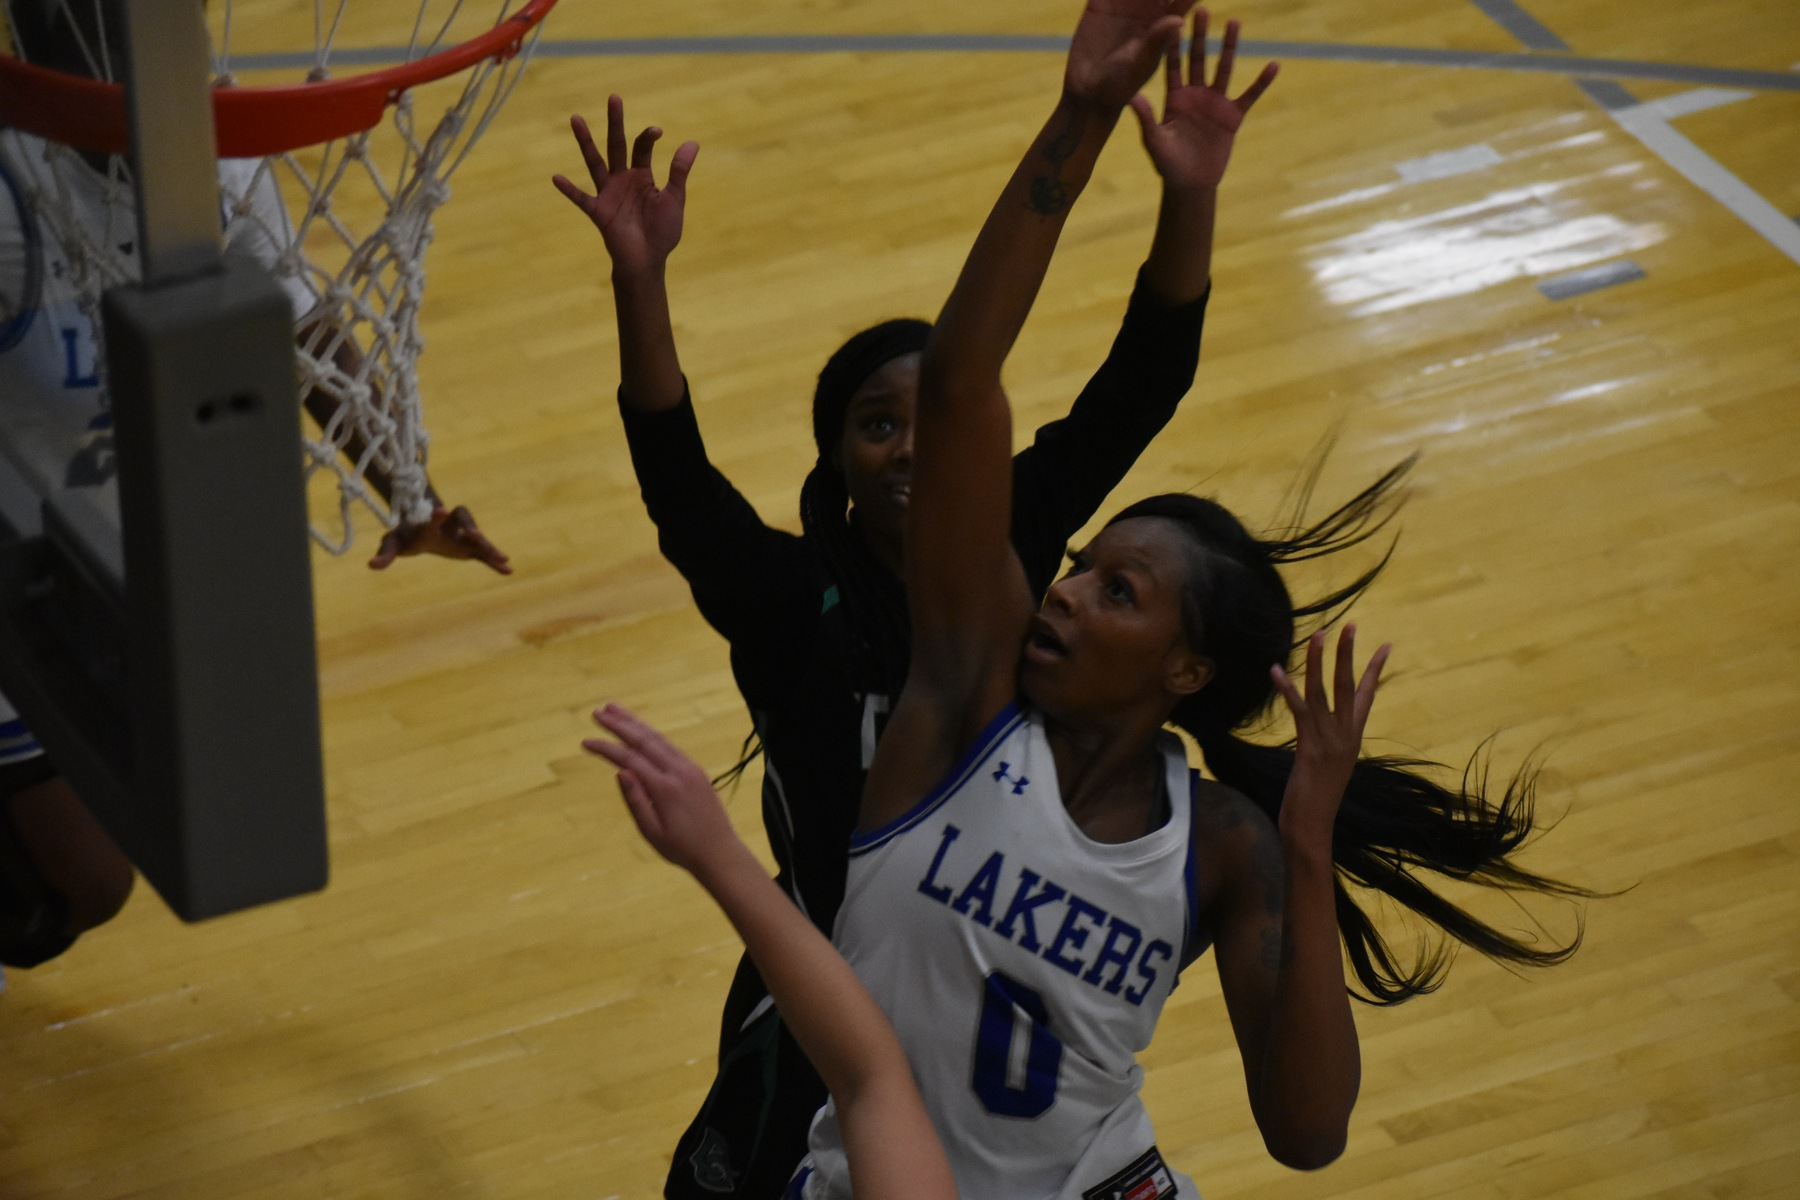 Lakeland women's basketball coasts to victory